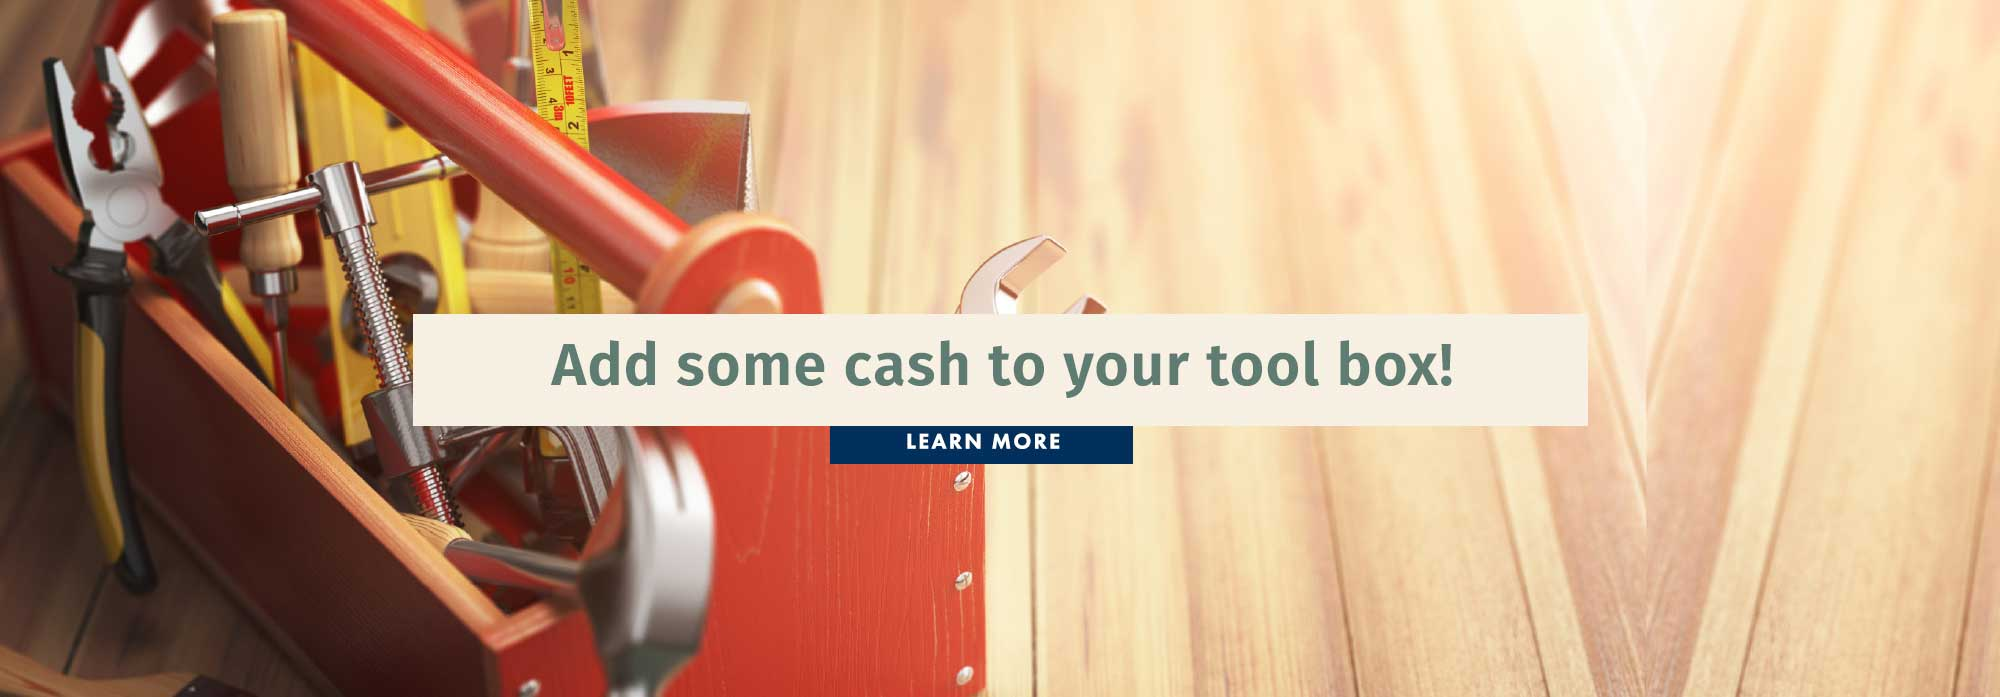 Add some cash to your tool box